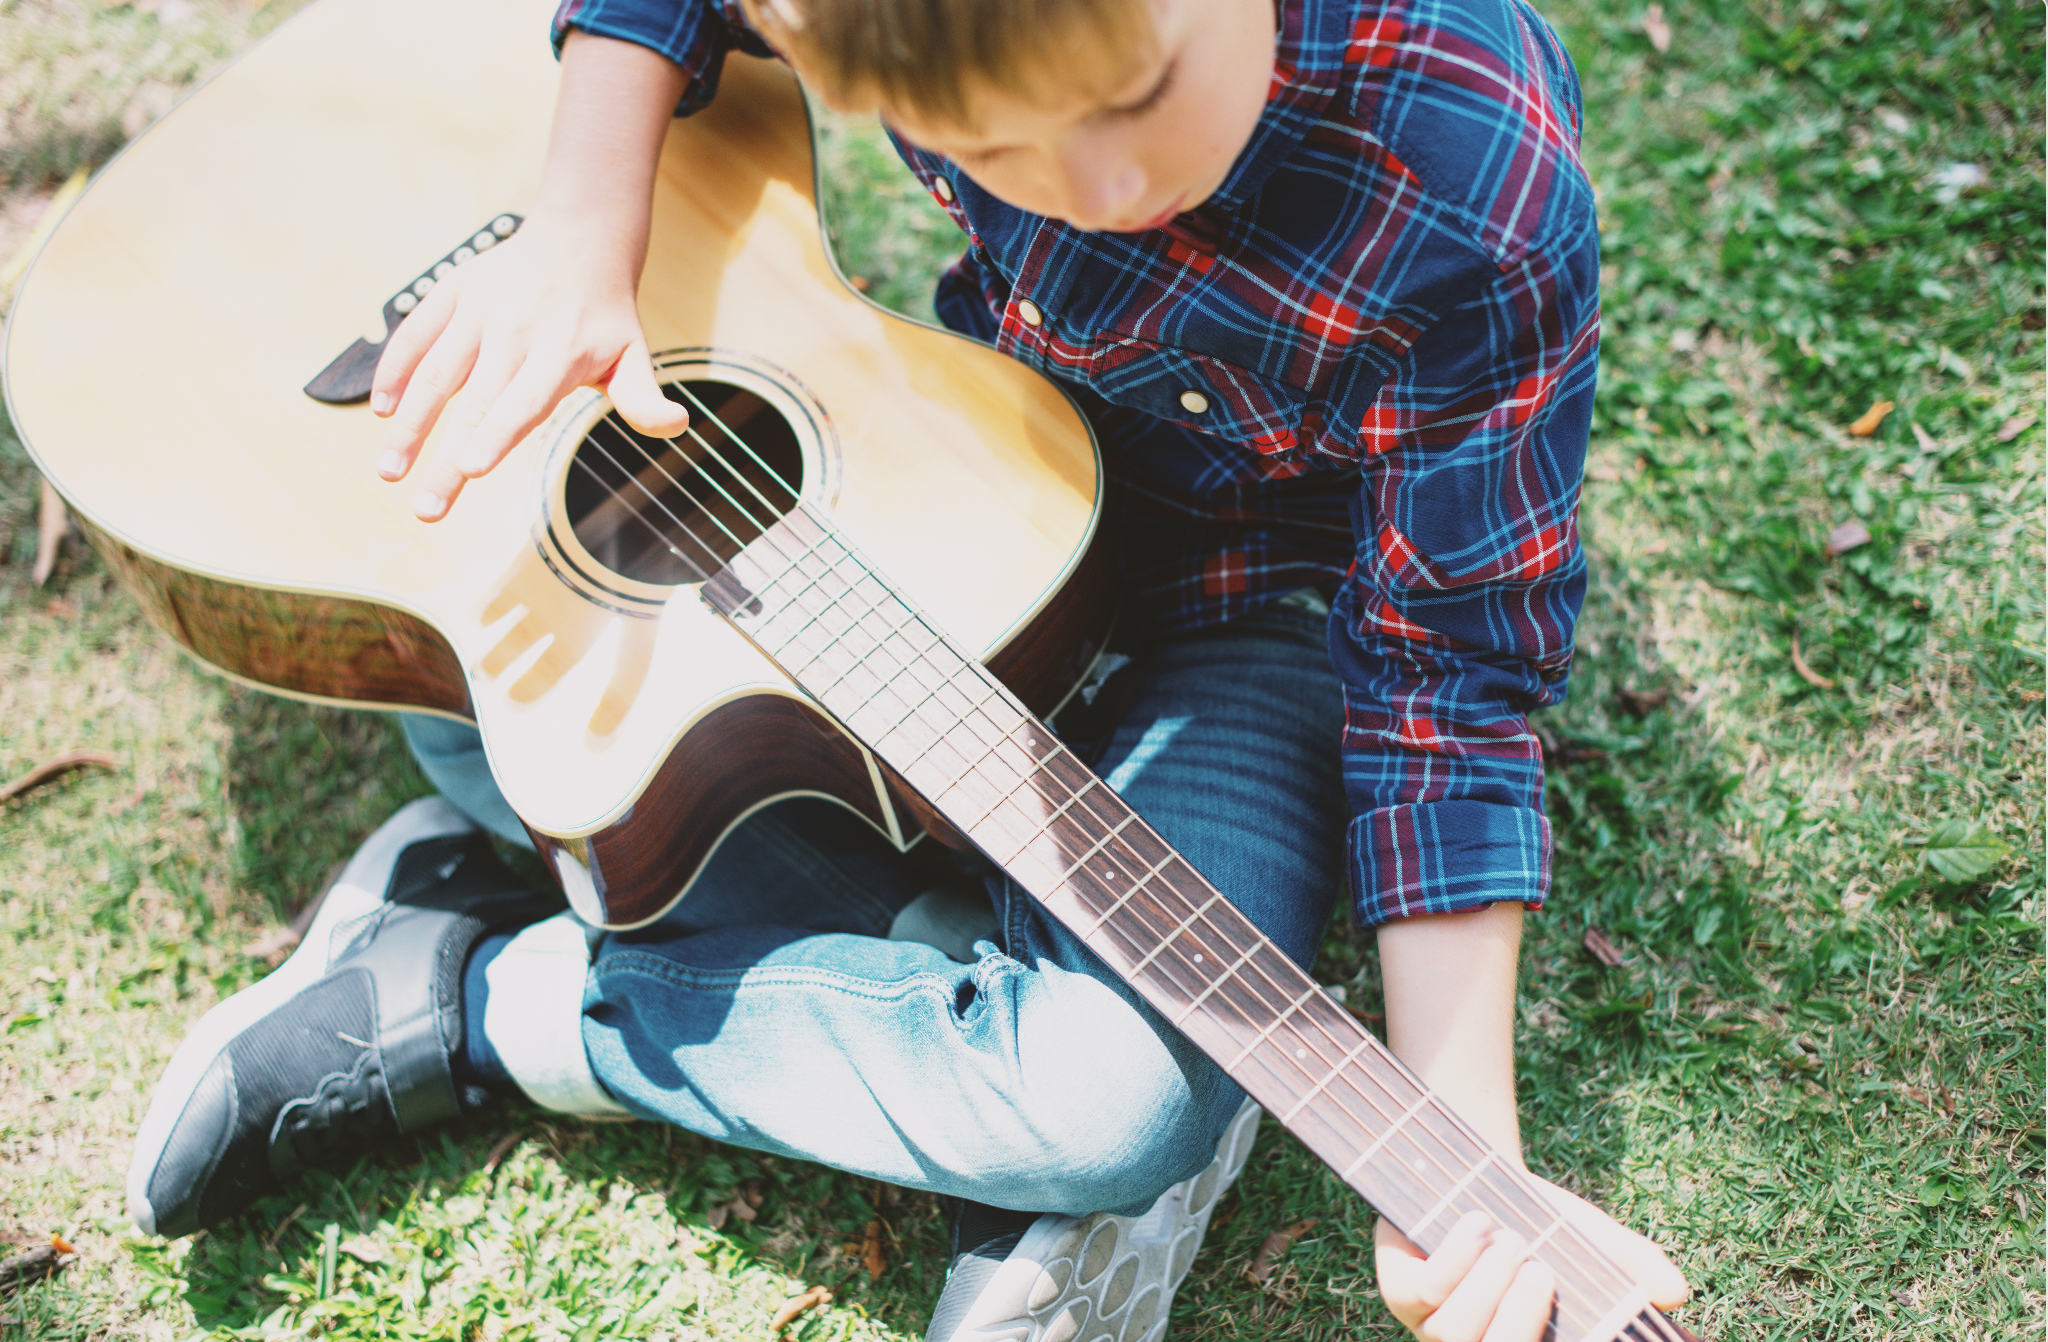 unschooling ideas - boy playing guitar